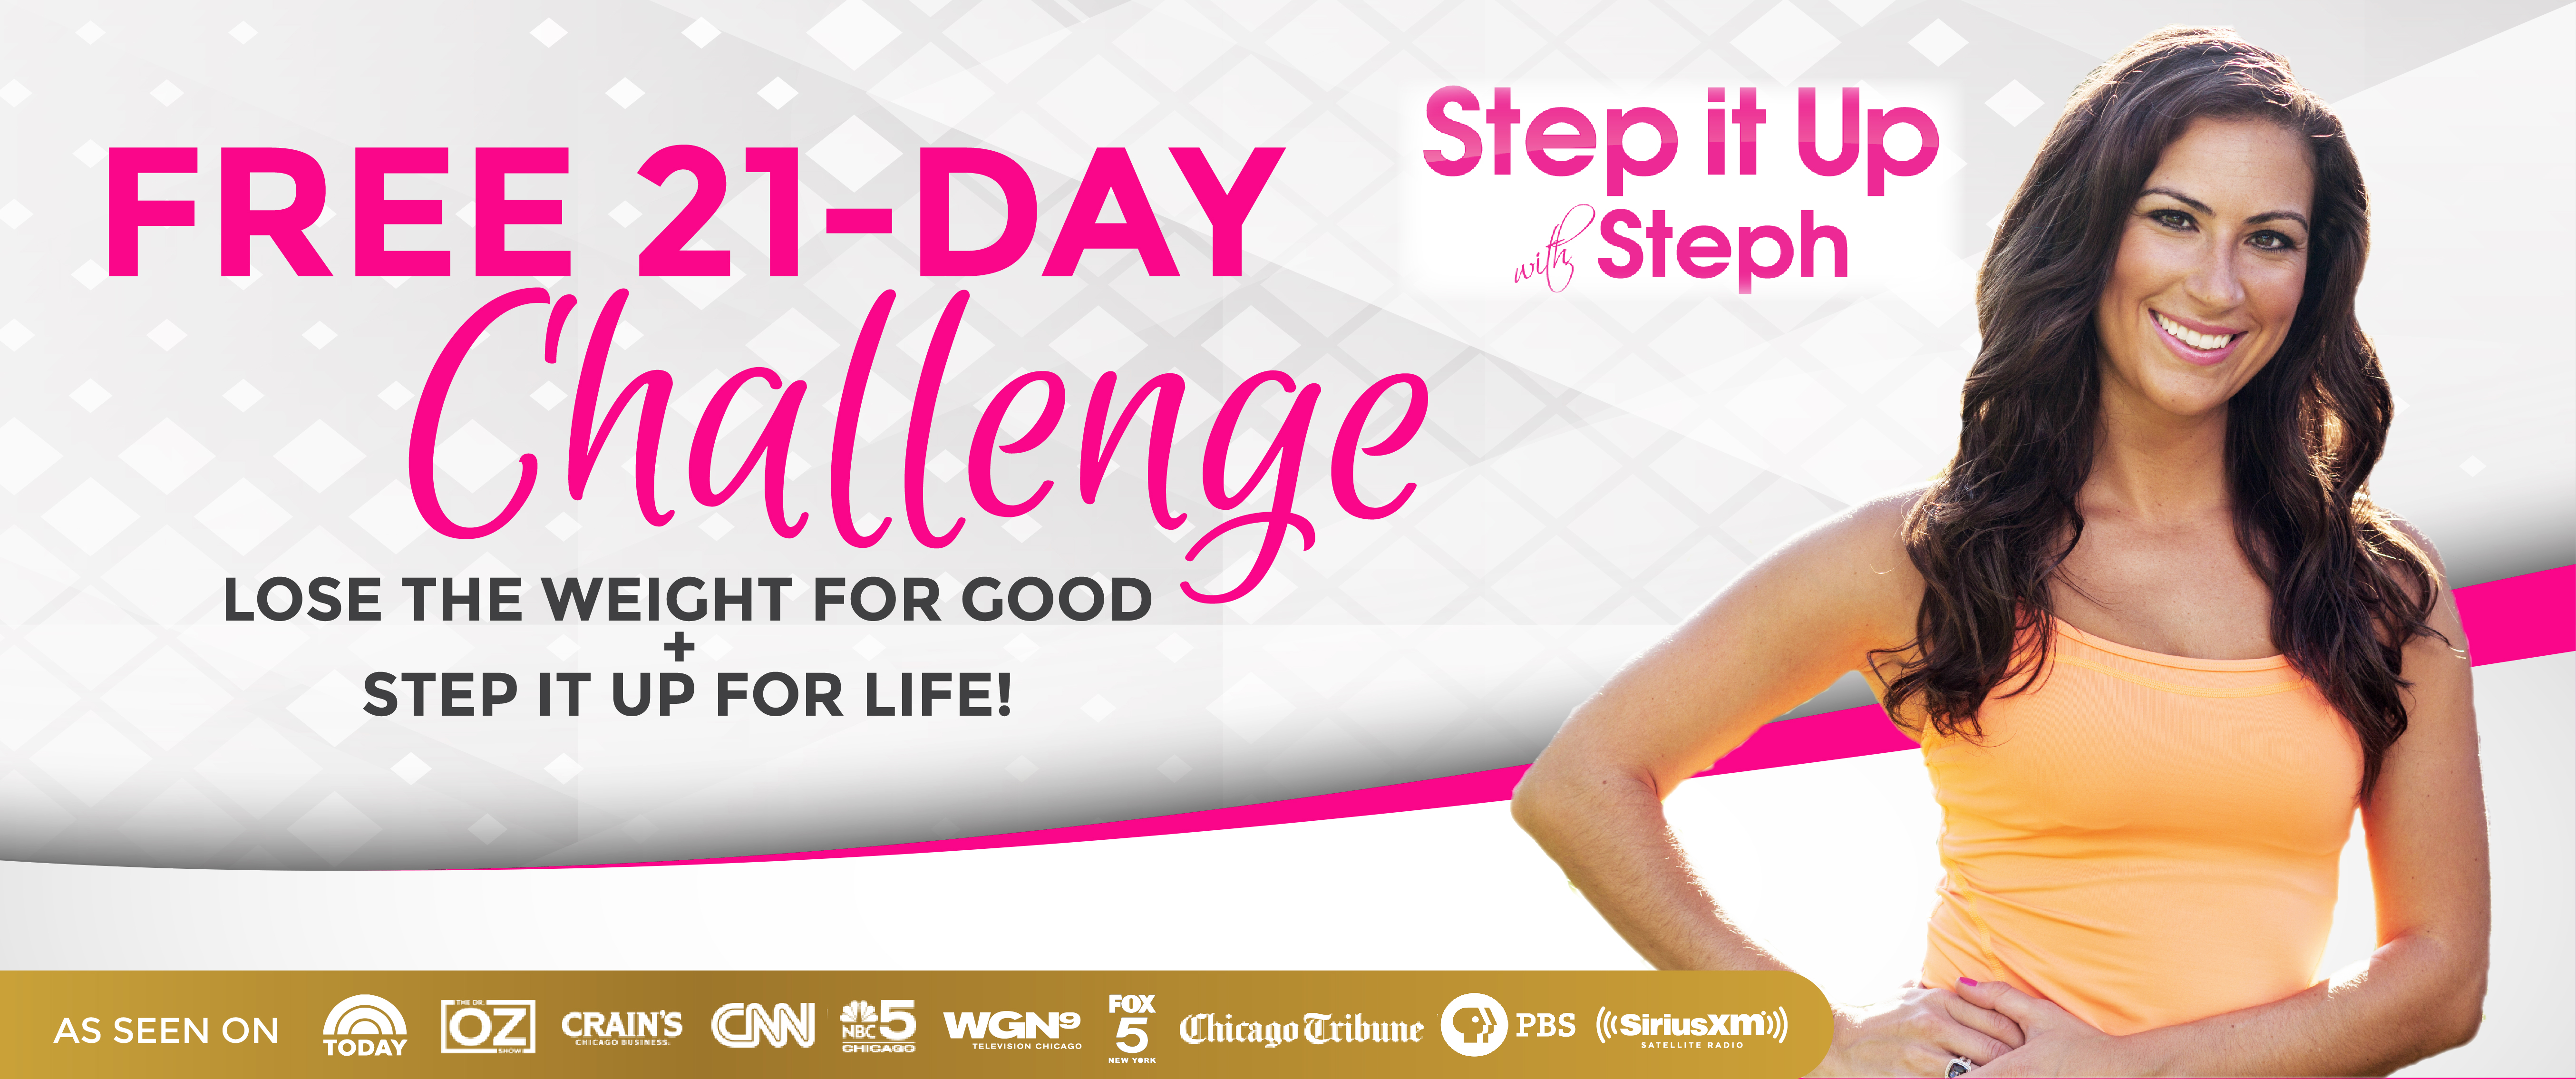 21-Day Lose the Weight Fast + Make it Last Challenge with